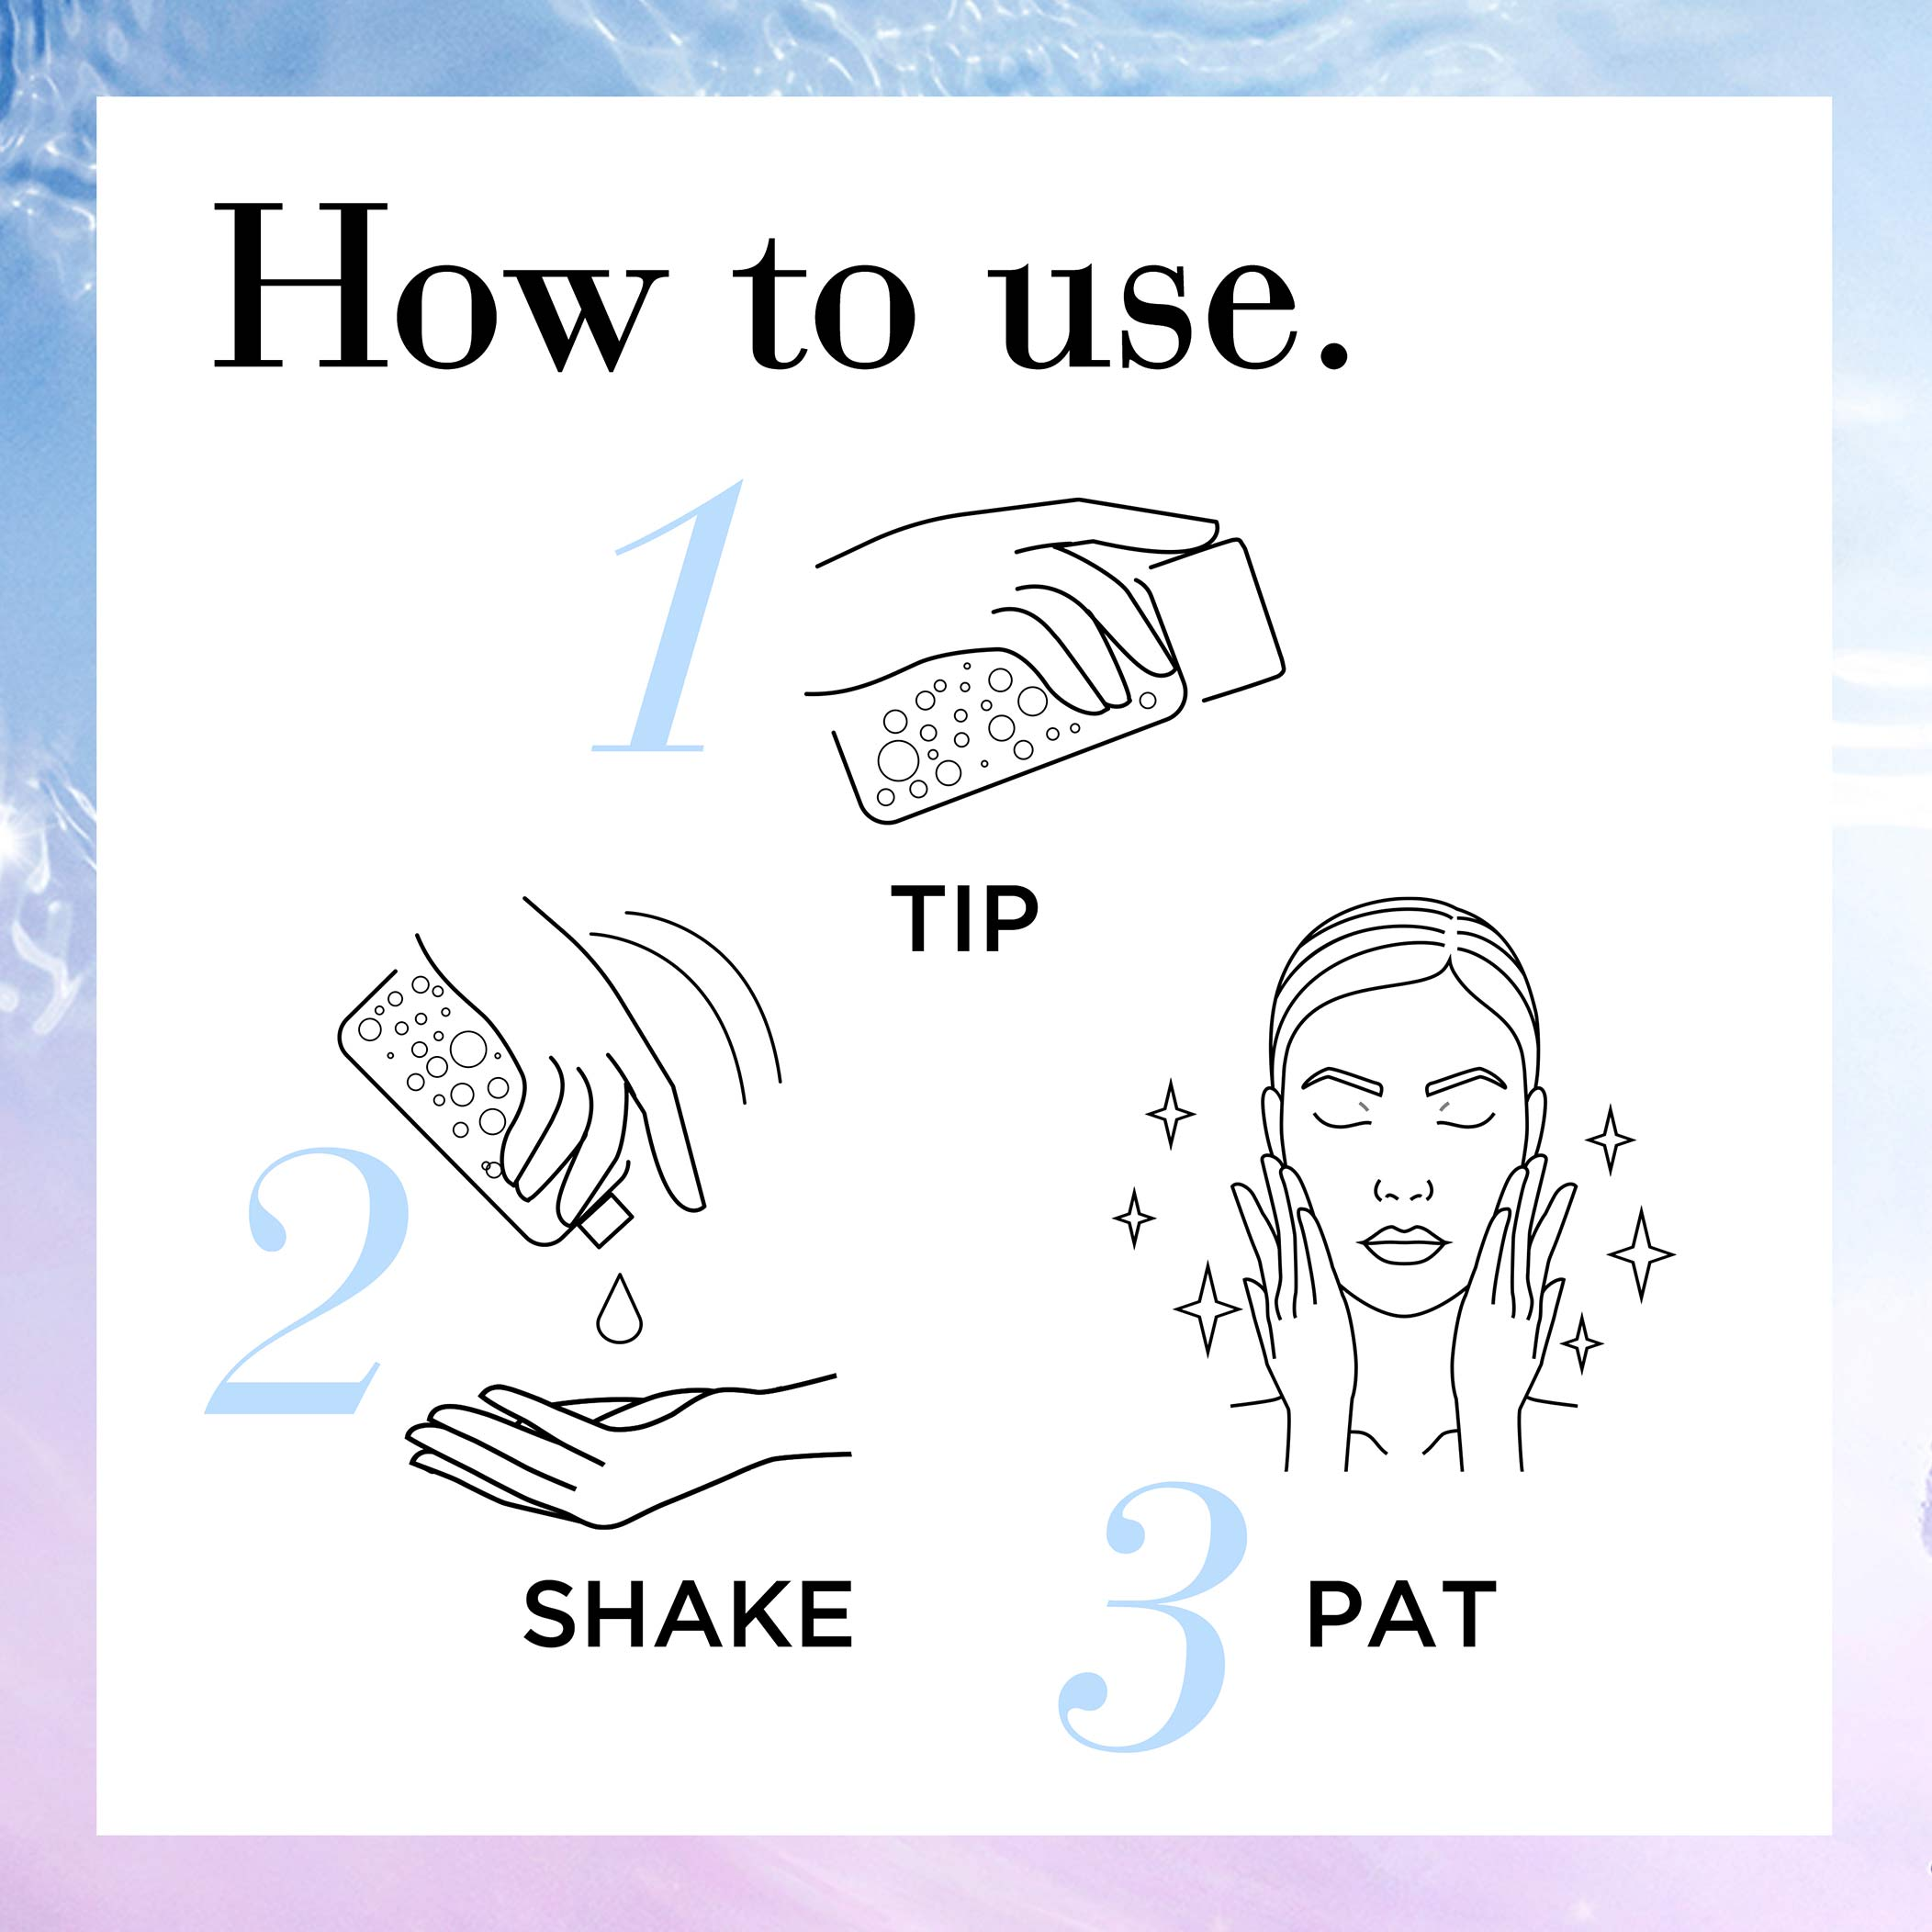 Tip bottle upside down to dispense 3-5 drops. Gently pat onto face. Use morning and/or night after cleansing. Follow with the rest of your skincare.